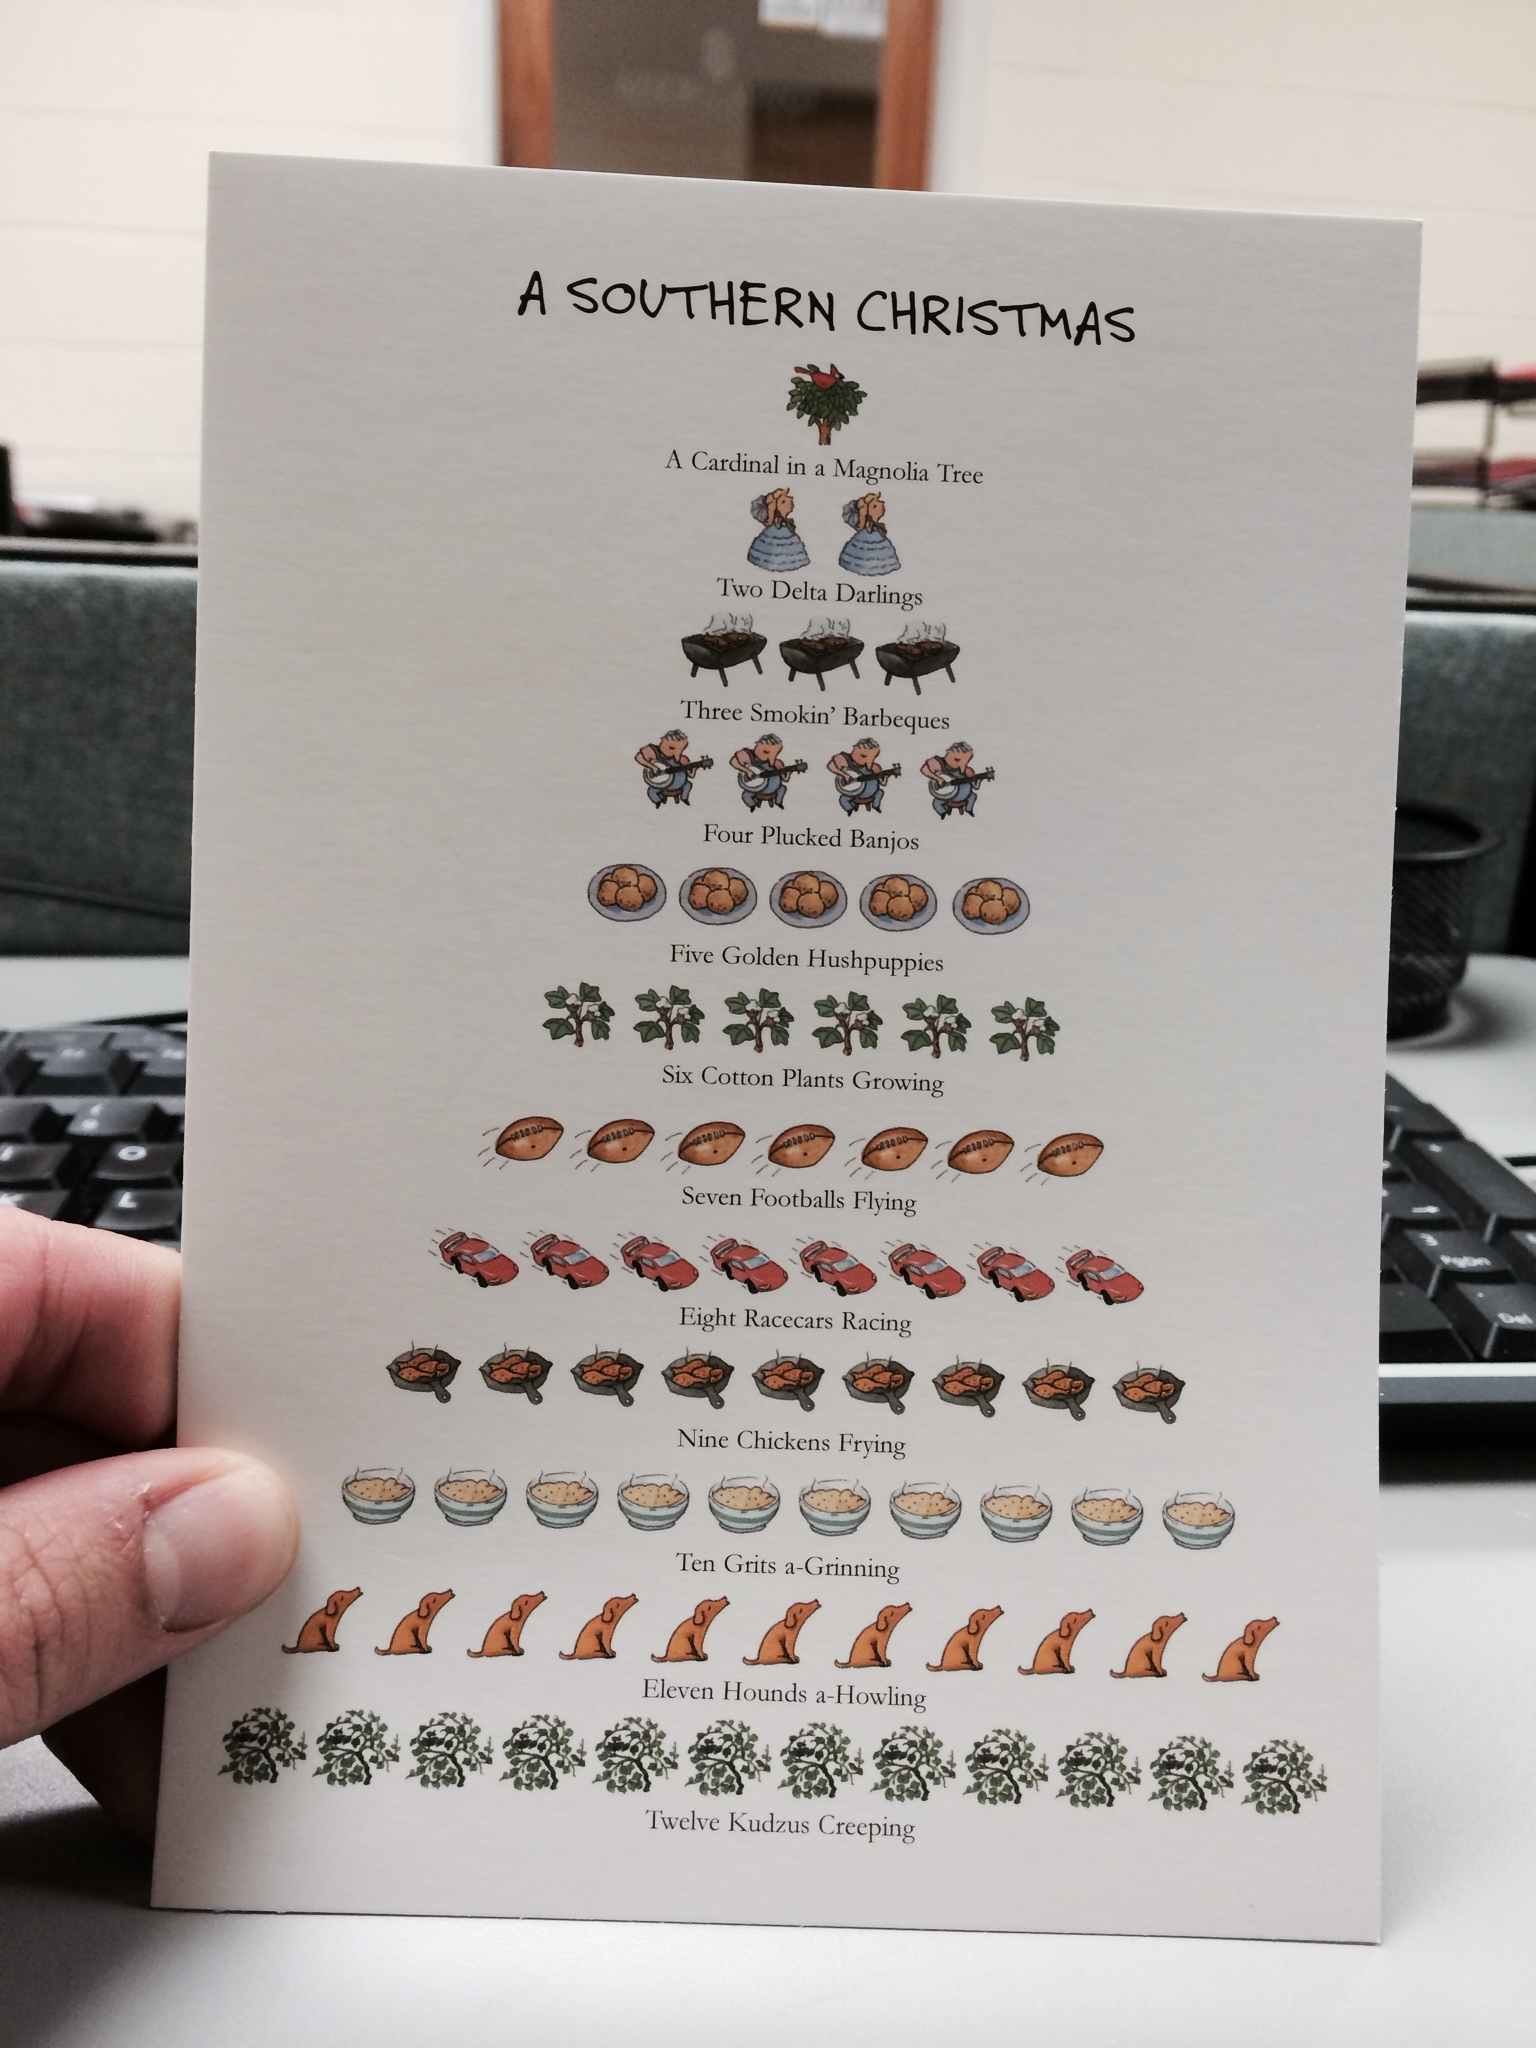 The cool Christmas card I received today.